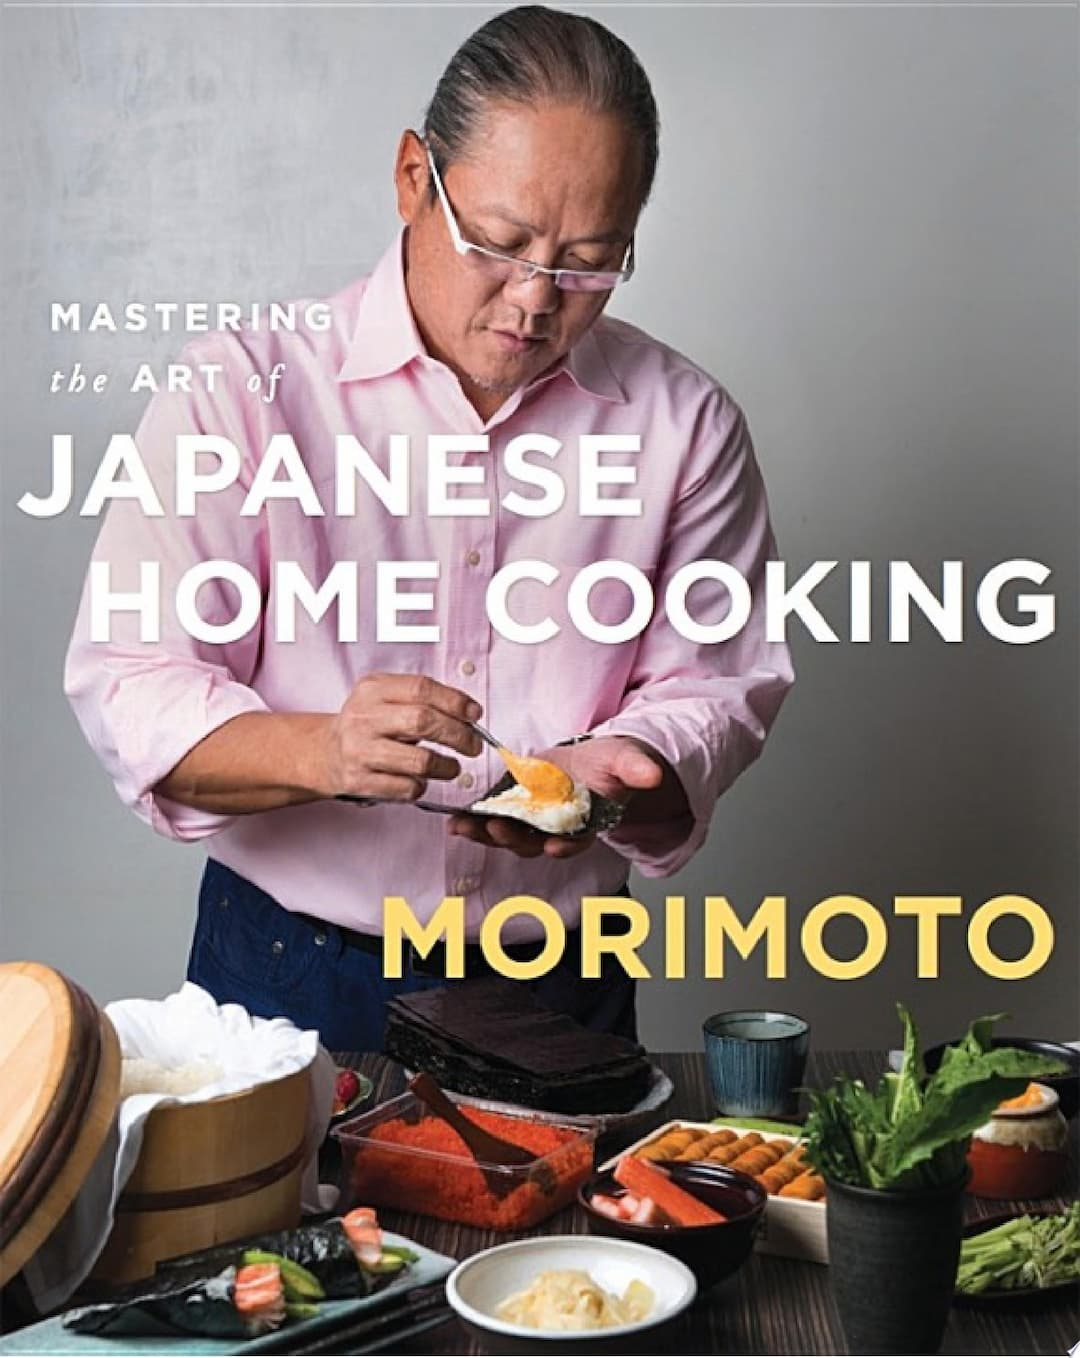 Cooking, Essays, Gastronomy, Masaharu Morimoto, Mastering the Art of Japanese Home Cooking, Quick & Easy Cooking